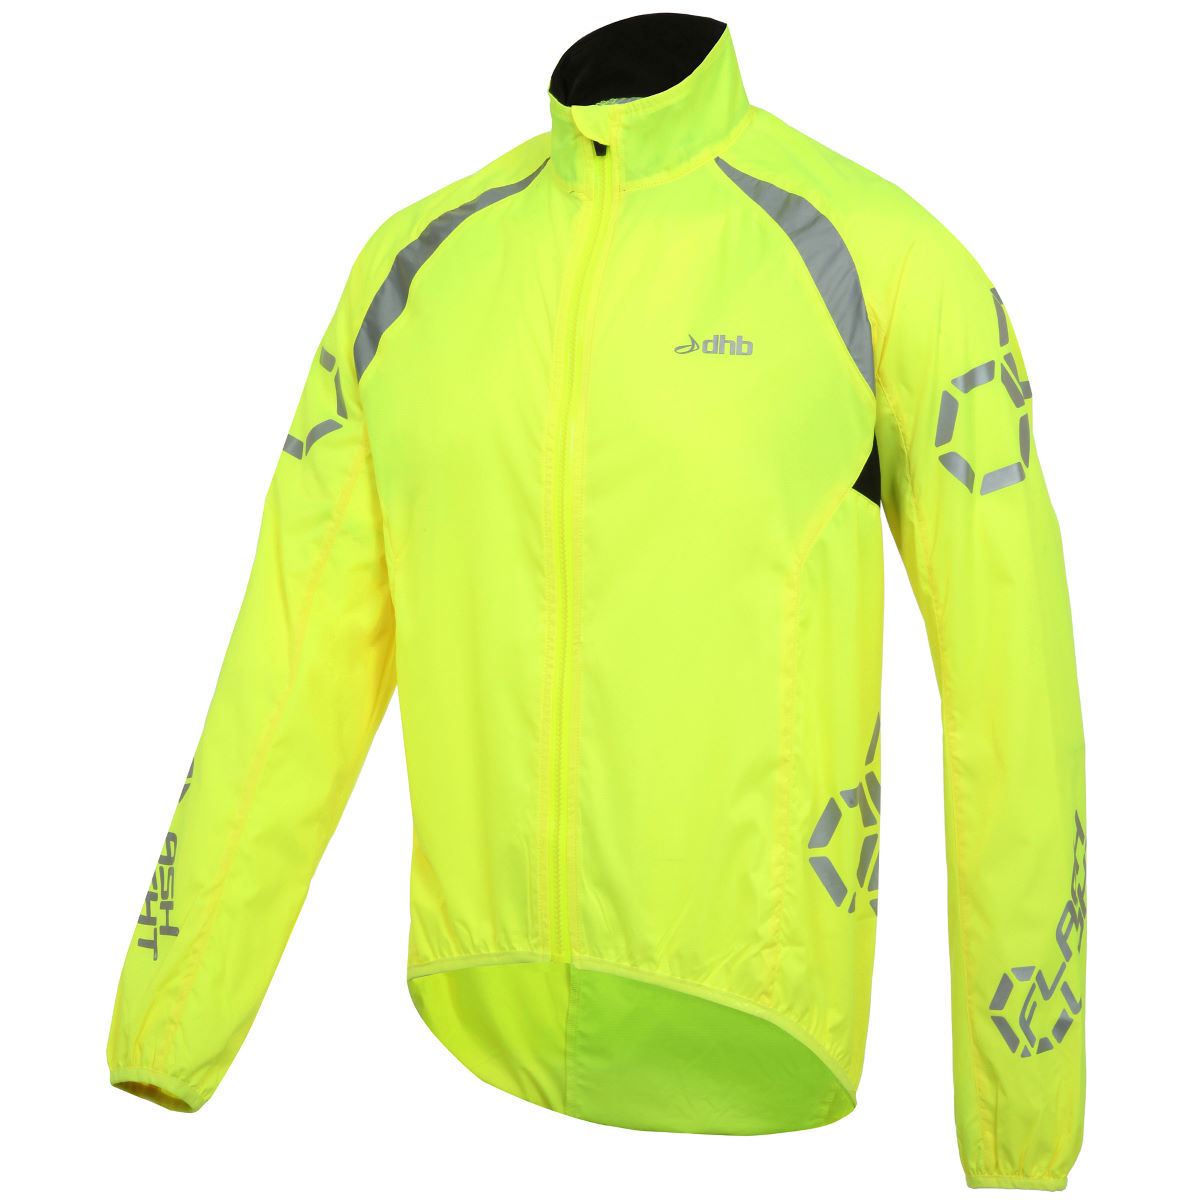 Veste dhb Flashlight (coupe-vent) - XS Fluro Yellow Coupe-vents vélo